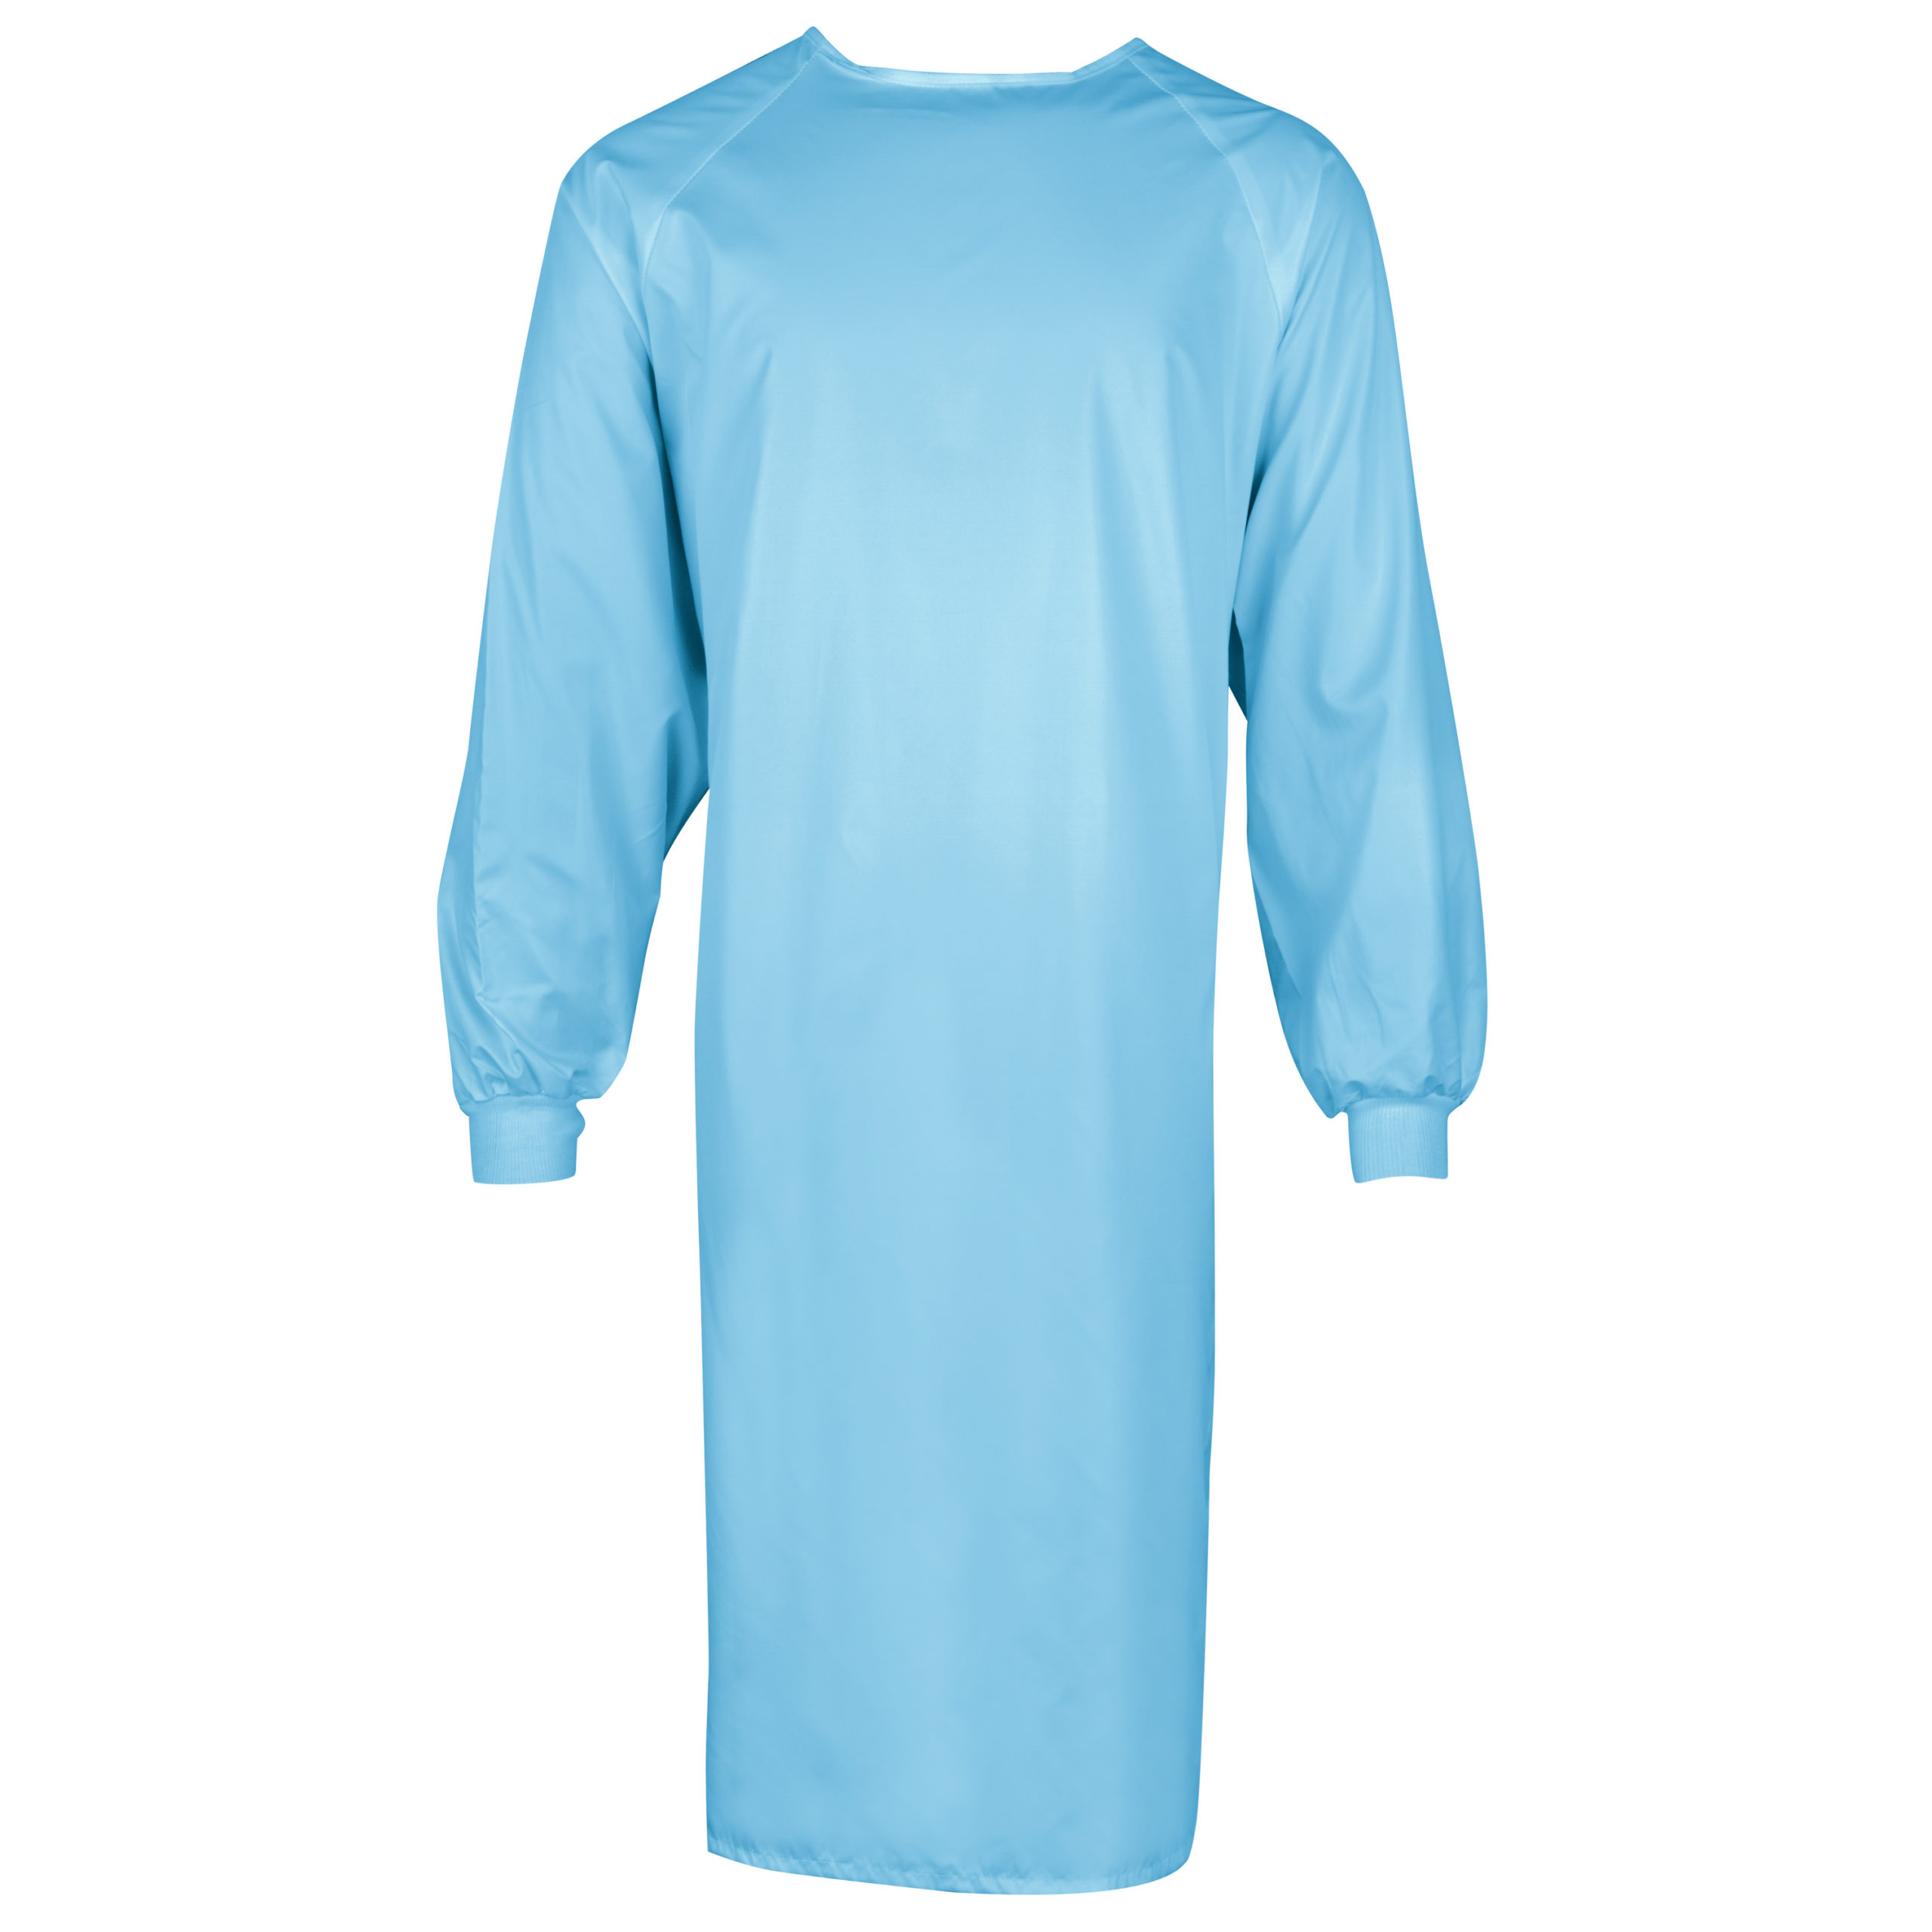 Reusable Isolation Gown-Prism Medical Apparel